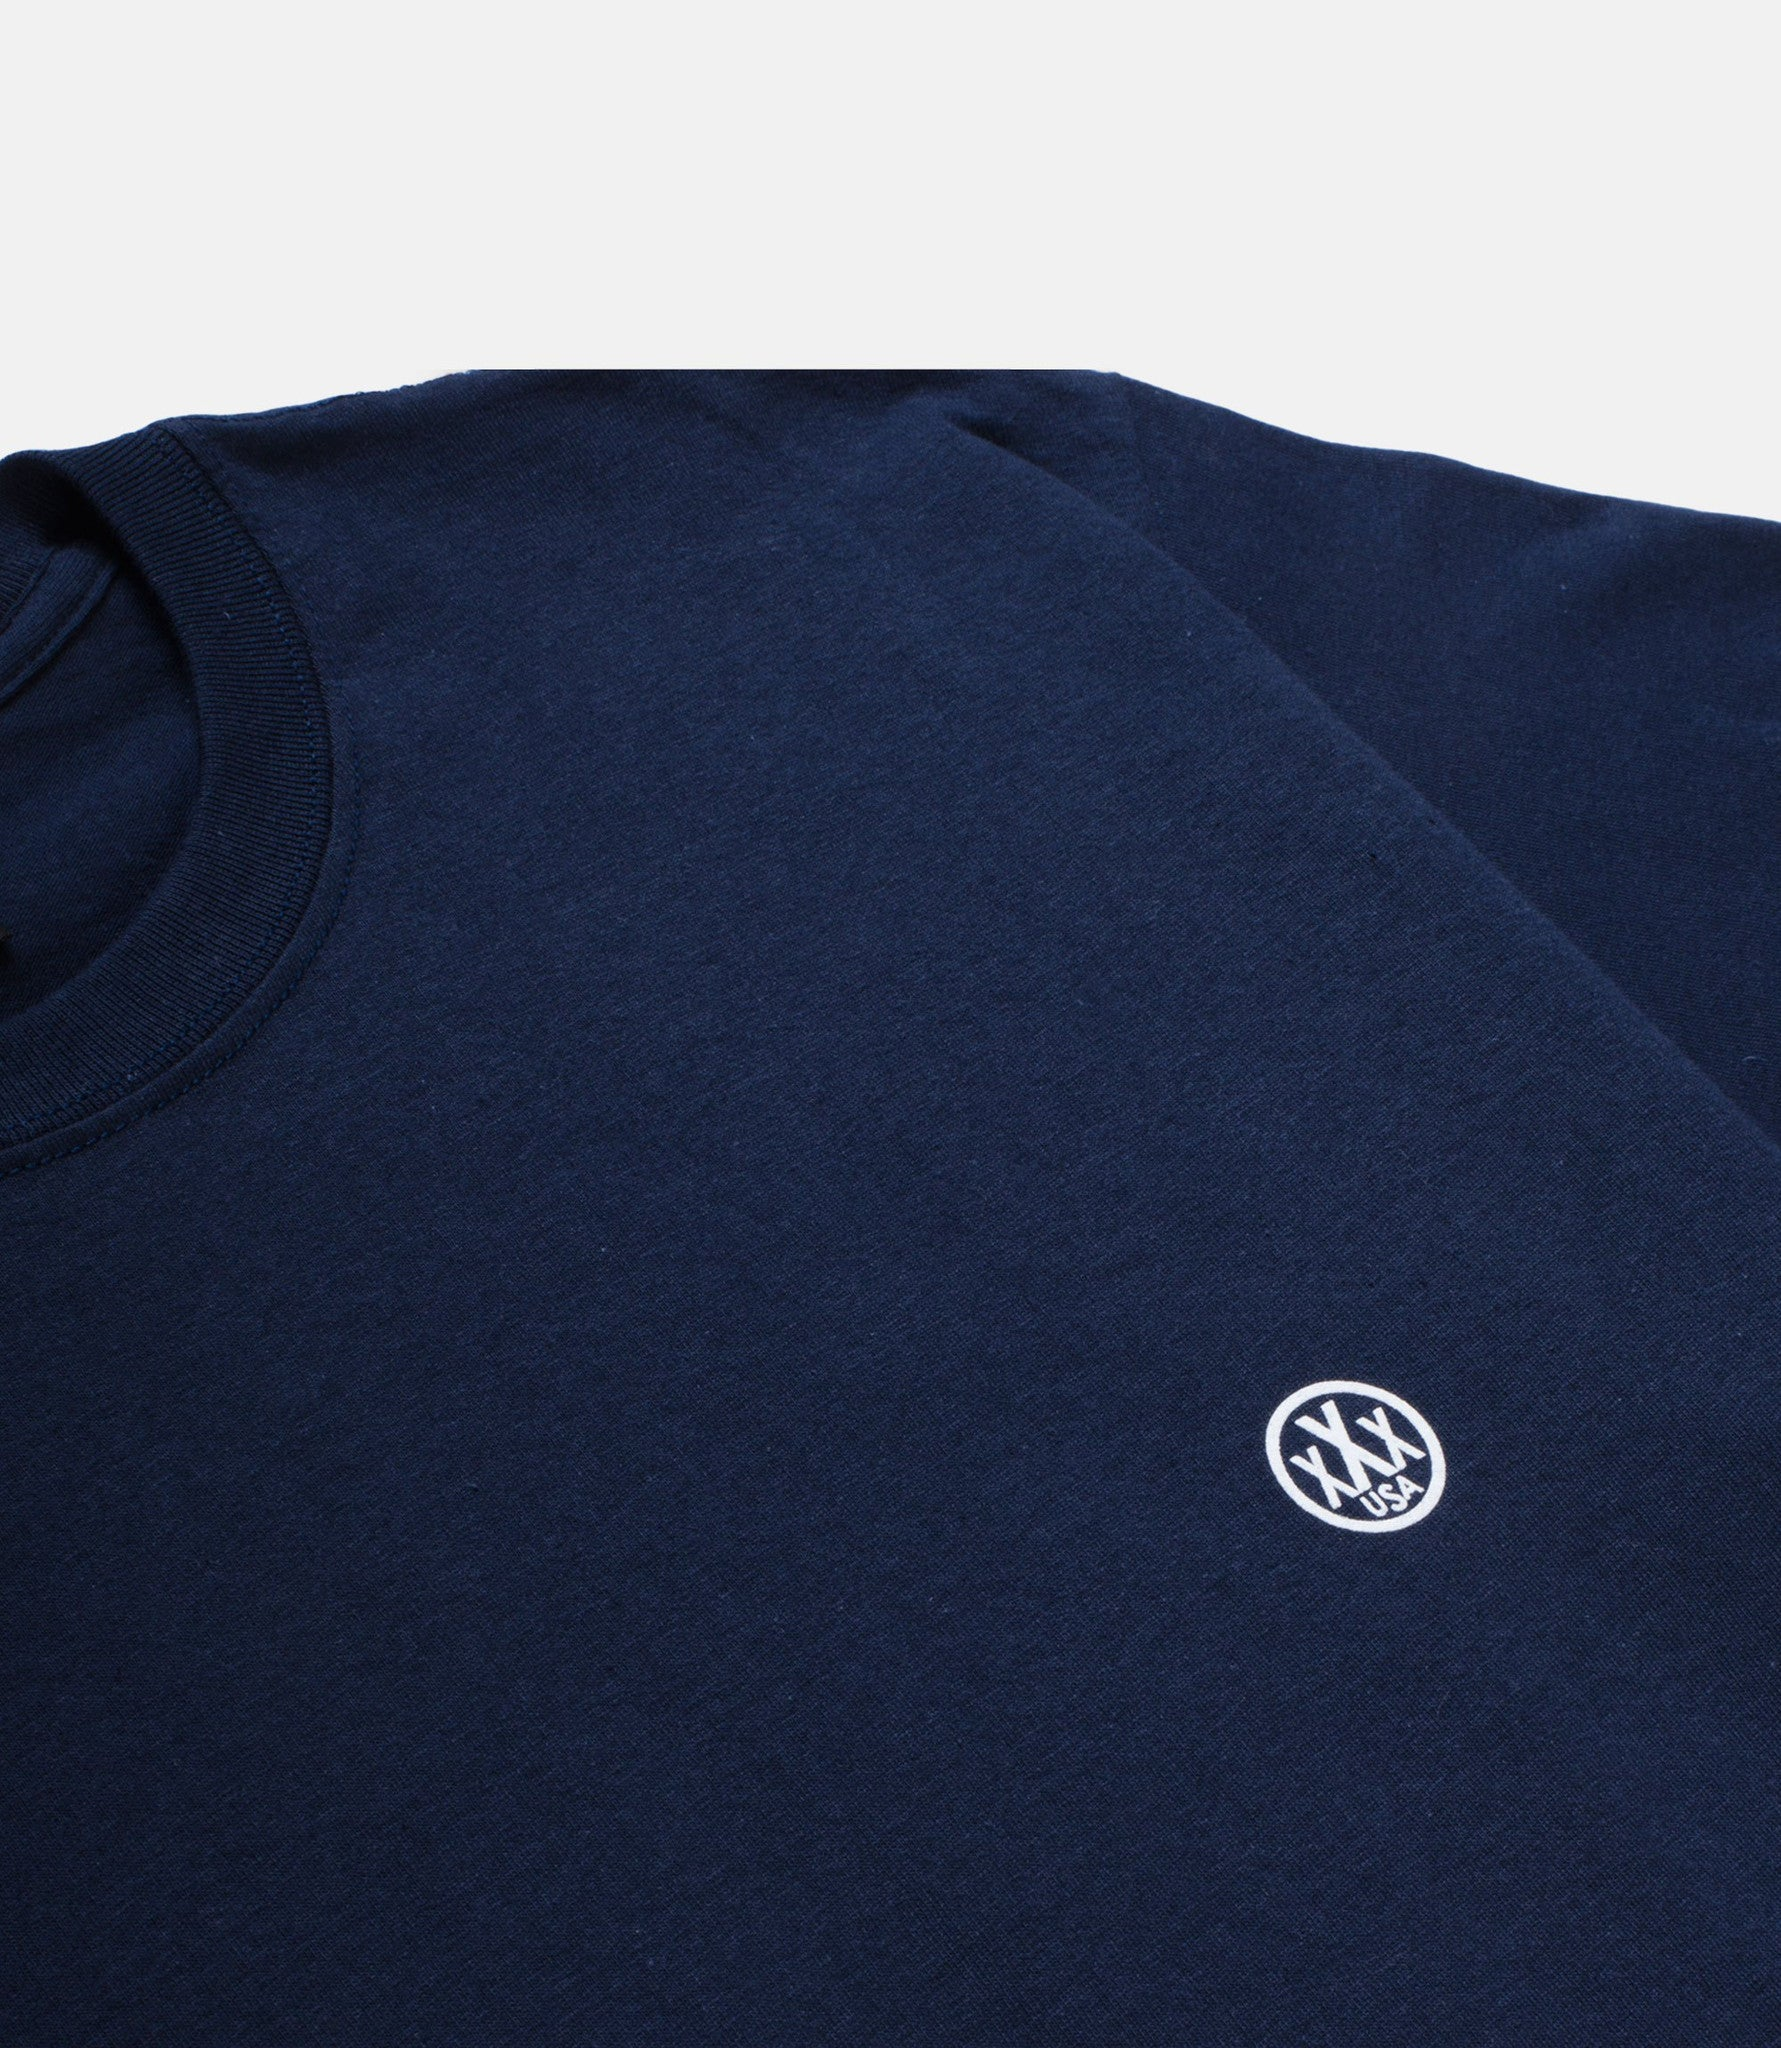 10Deep - Namsaknoi Men's Tee, Navy - The Giant Peach - 3